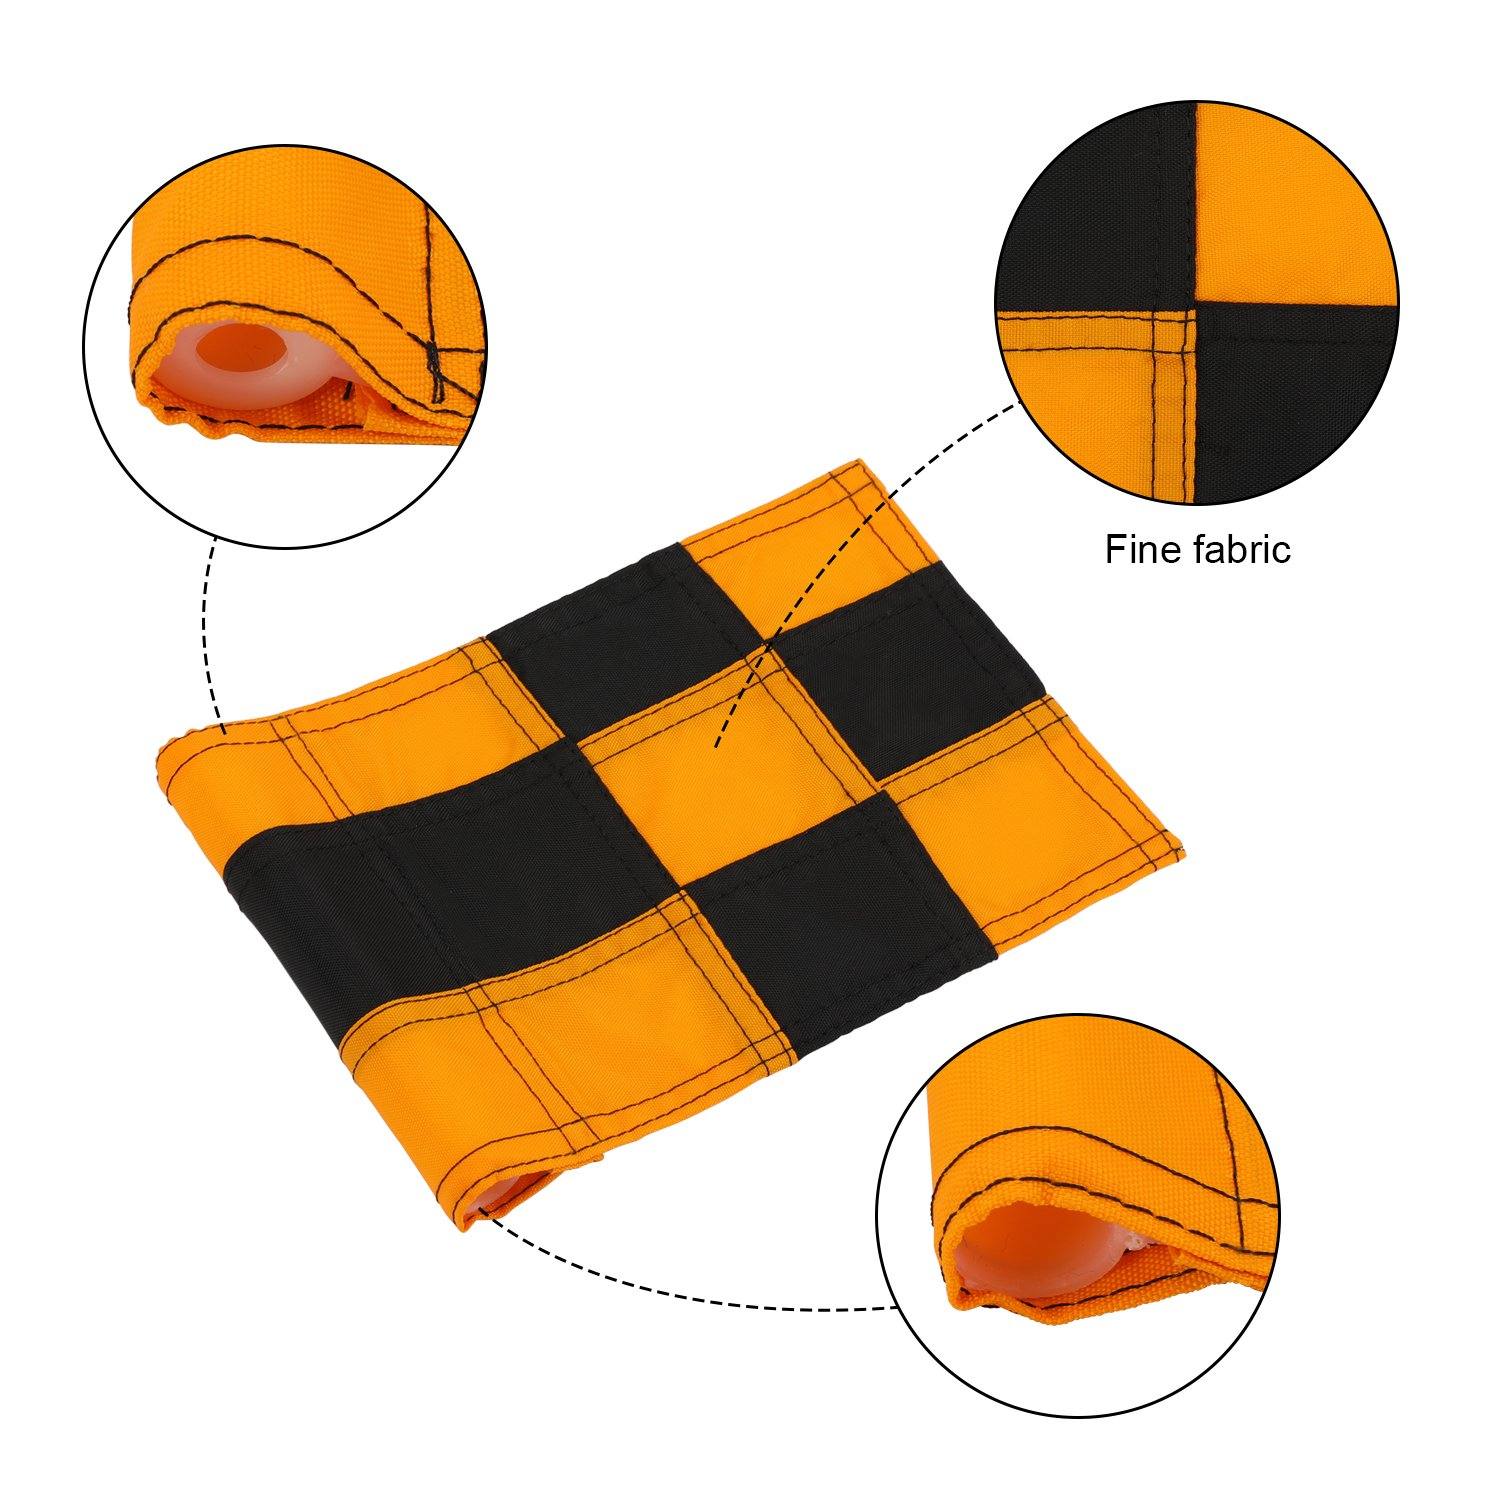 KONDAY Golf Flag,Practice Green Golf Flags, Solid Nylon and Checkered Traning Golf Putting Green Flags, Indoor Outdoor Backyard Garden Portable Golf Target flags by KONDAY (Image #5)